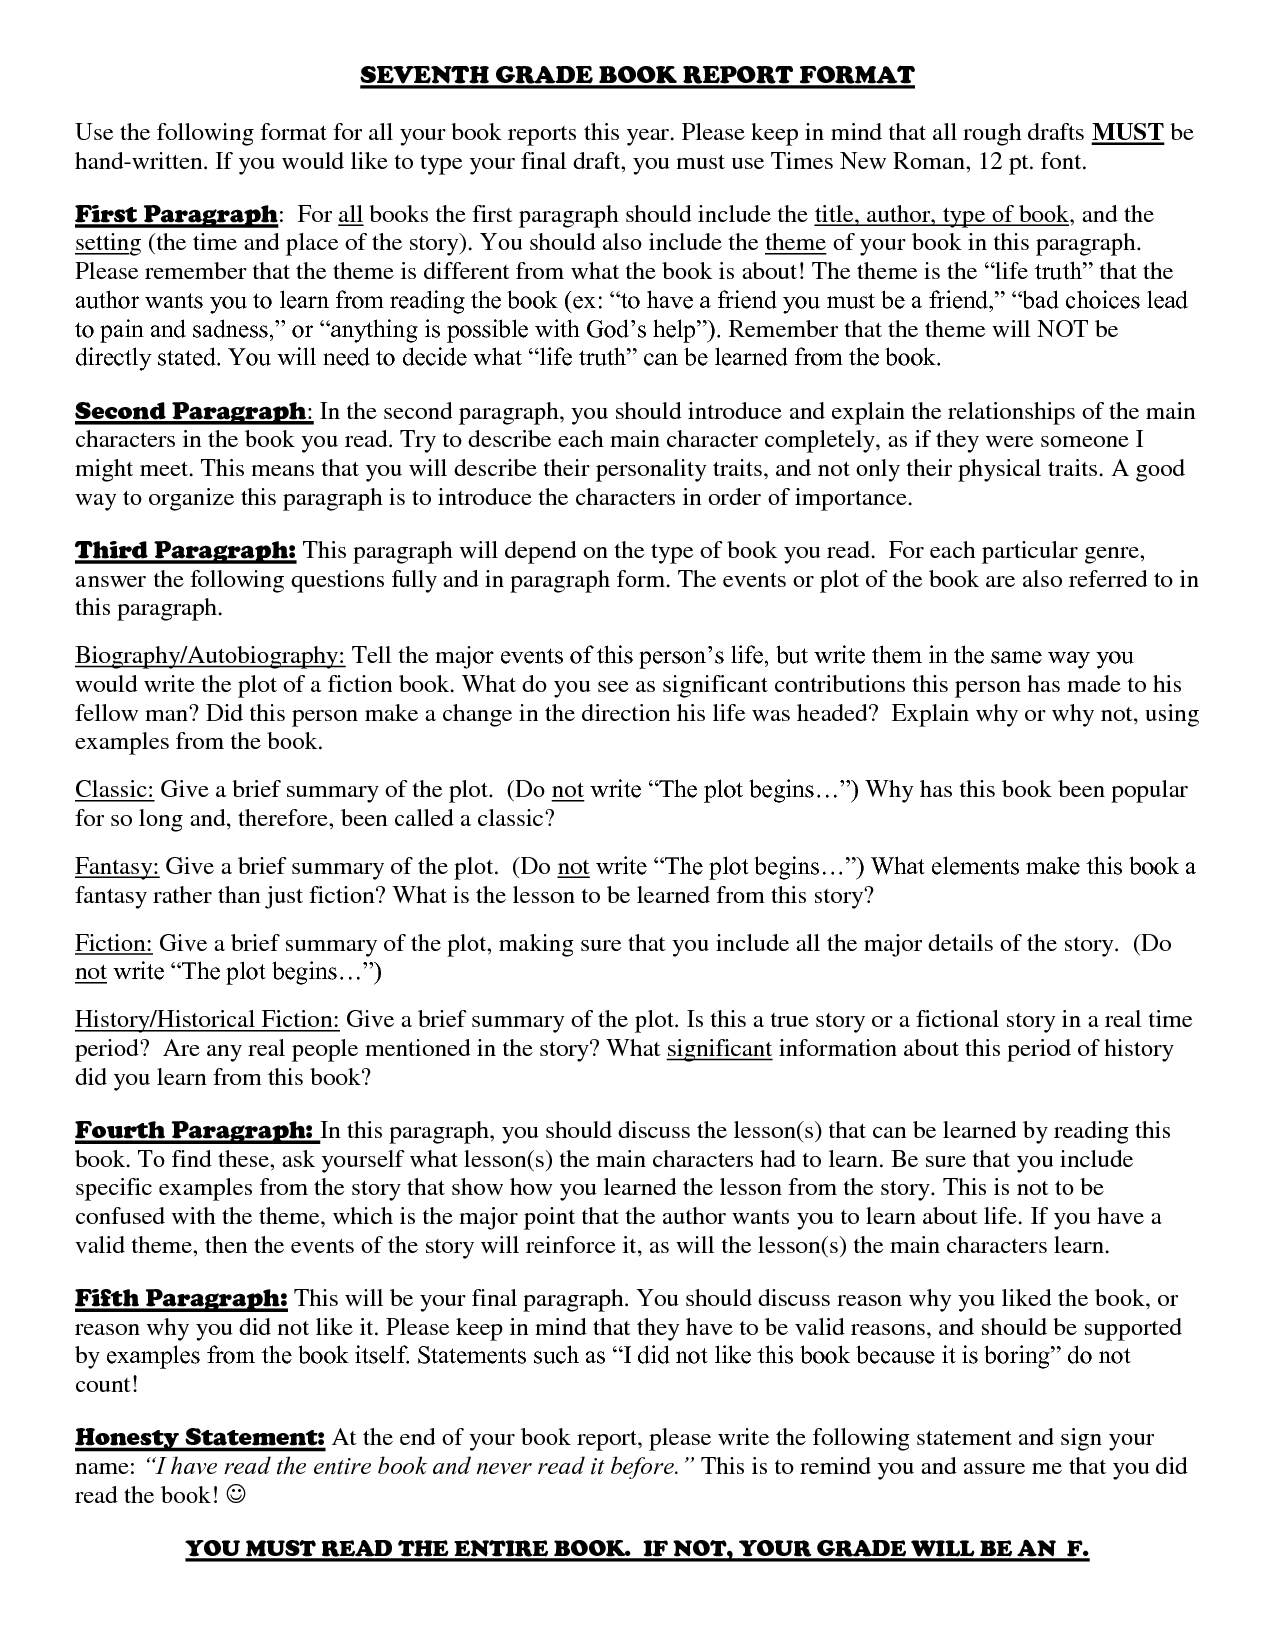 10 Elegant Book Report Ideas For 5Th Grade fifth grade biography book report homeshealth 1 2020